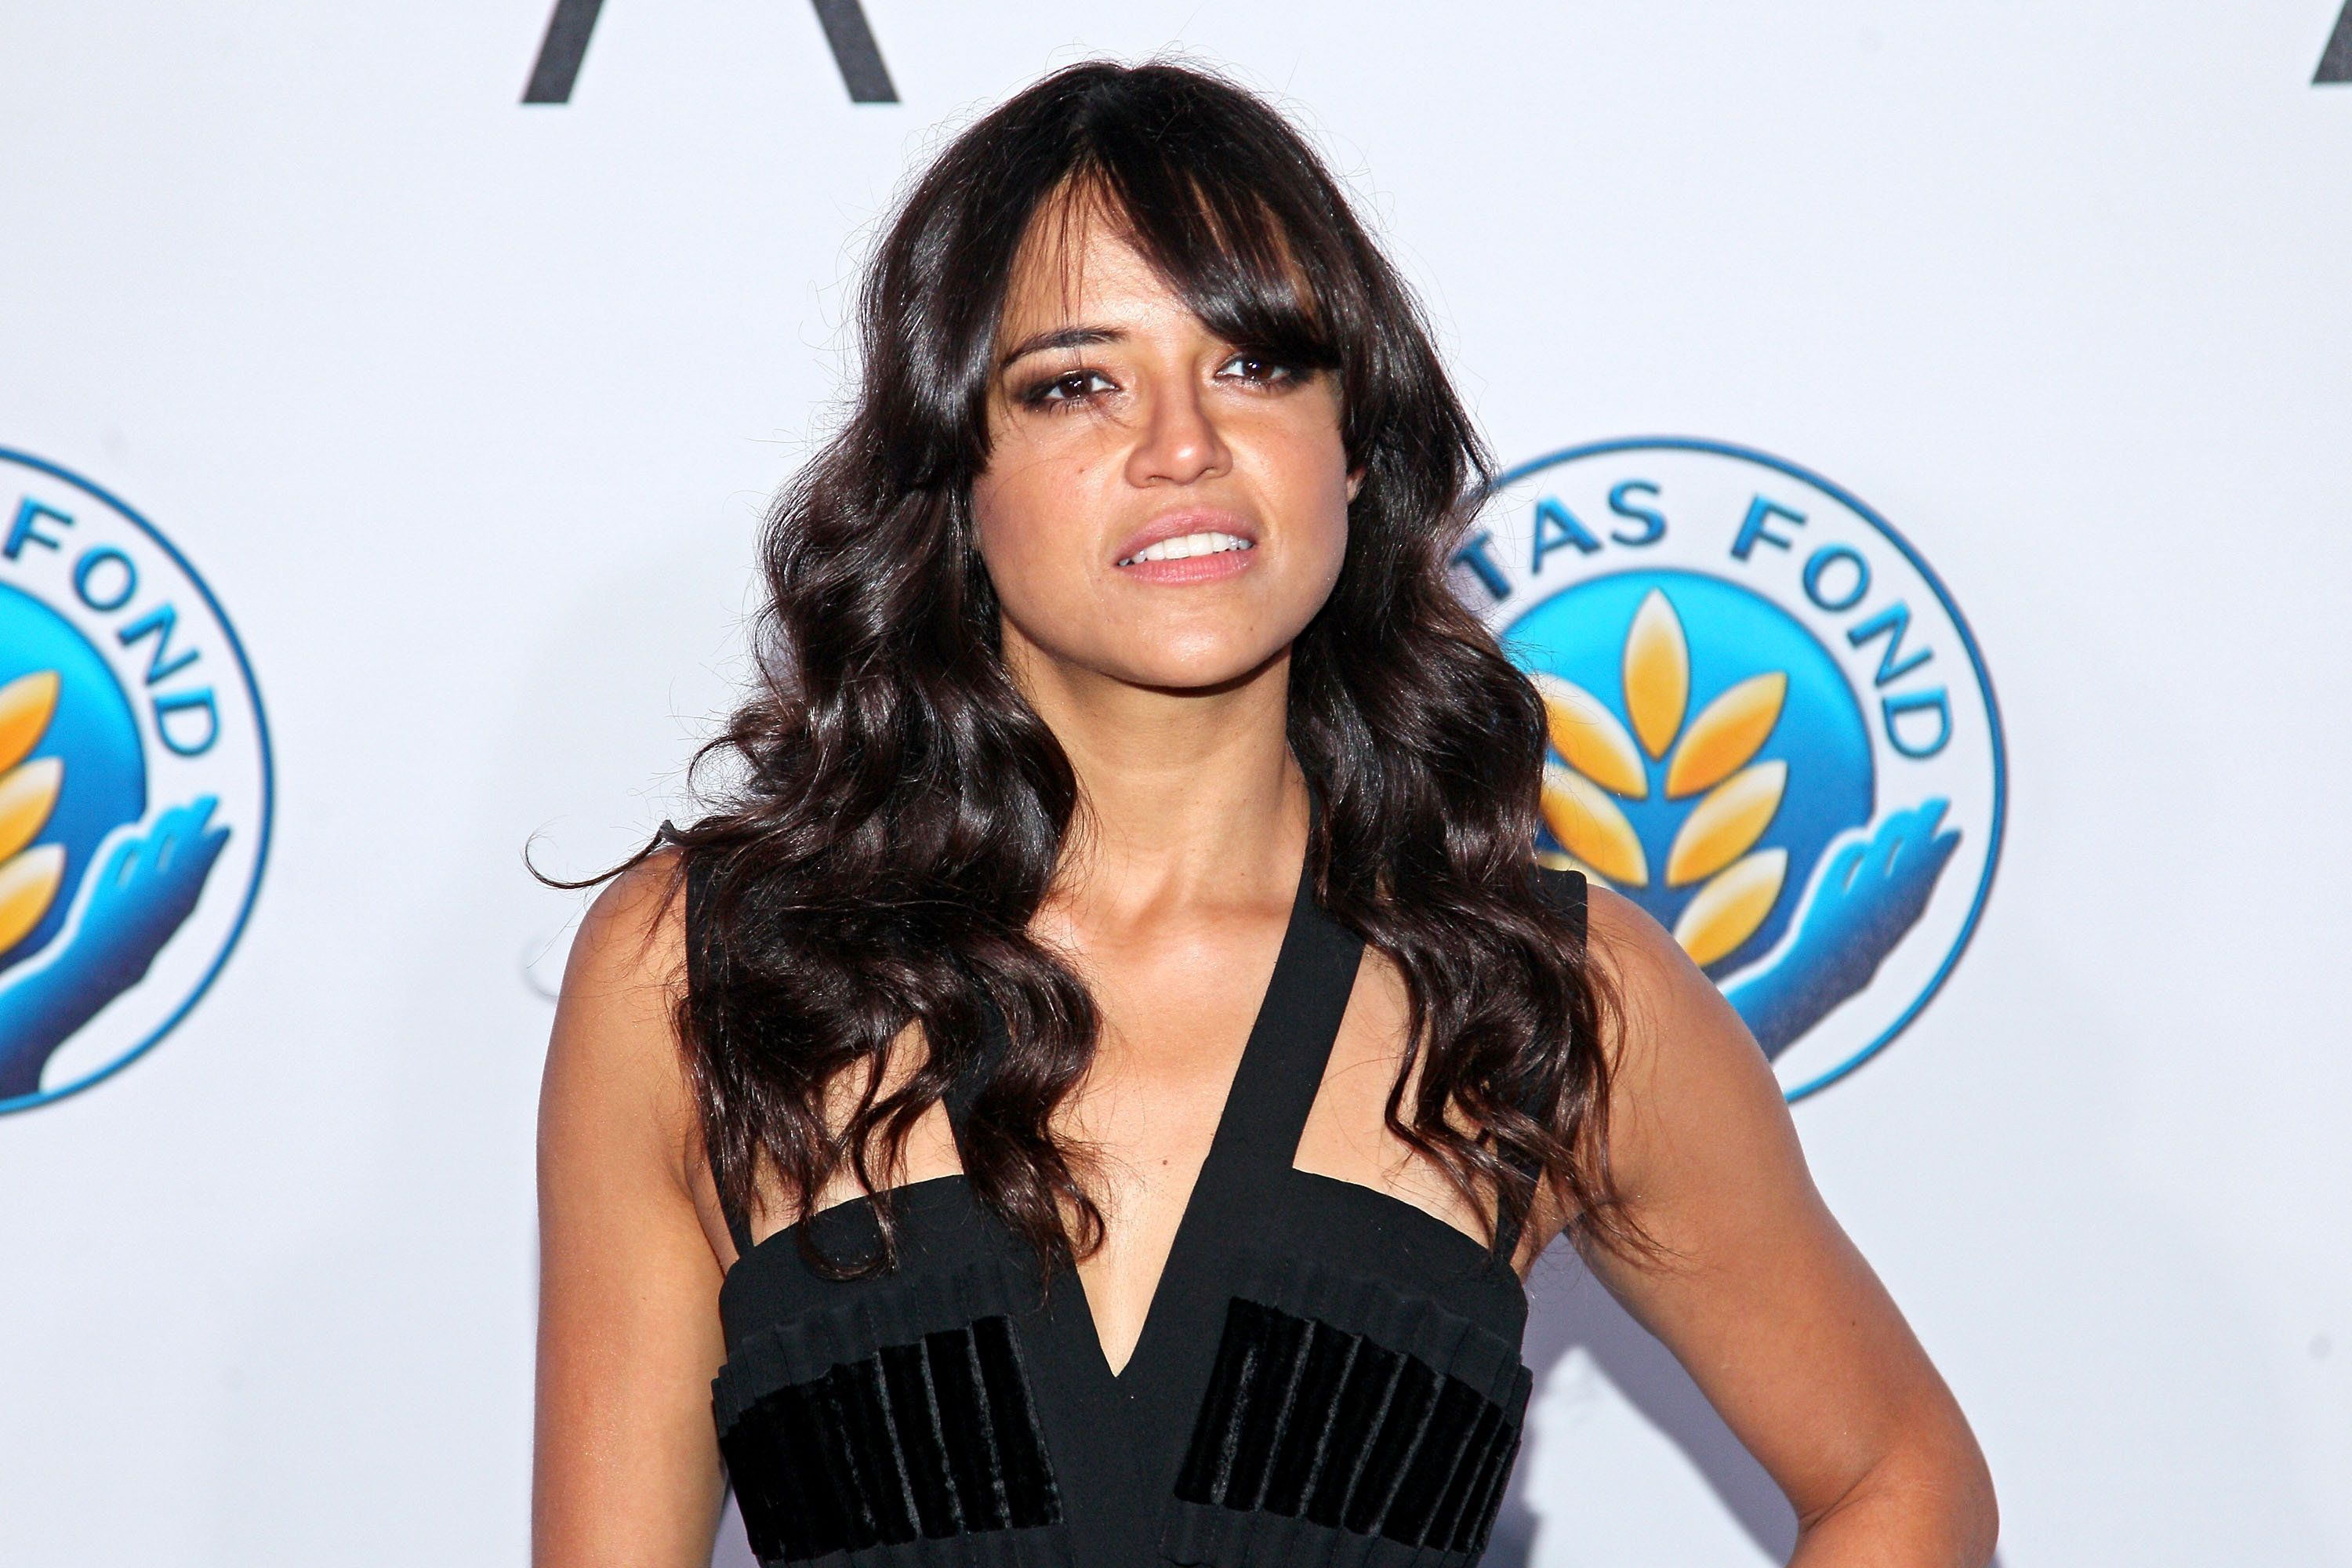 NEW YORK, NY - SEPTEMBER 15:  Michelle Rodriguez attends UNITA's First Annual Gala Against Human Trafficking at Capitale on September 15, 2015 in New York City.  (Photo by Steve Mack/FilmMagic)